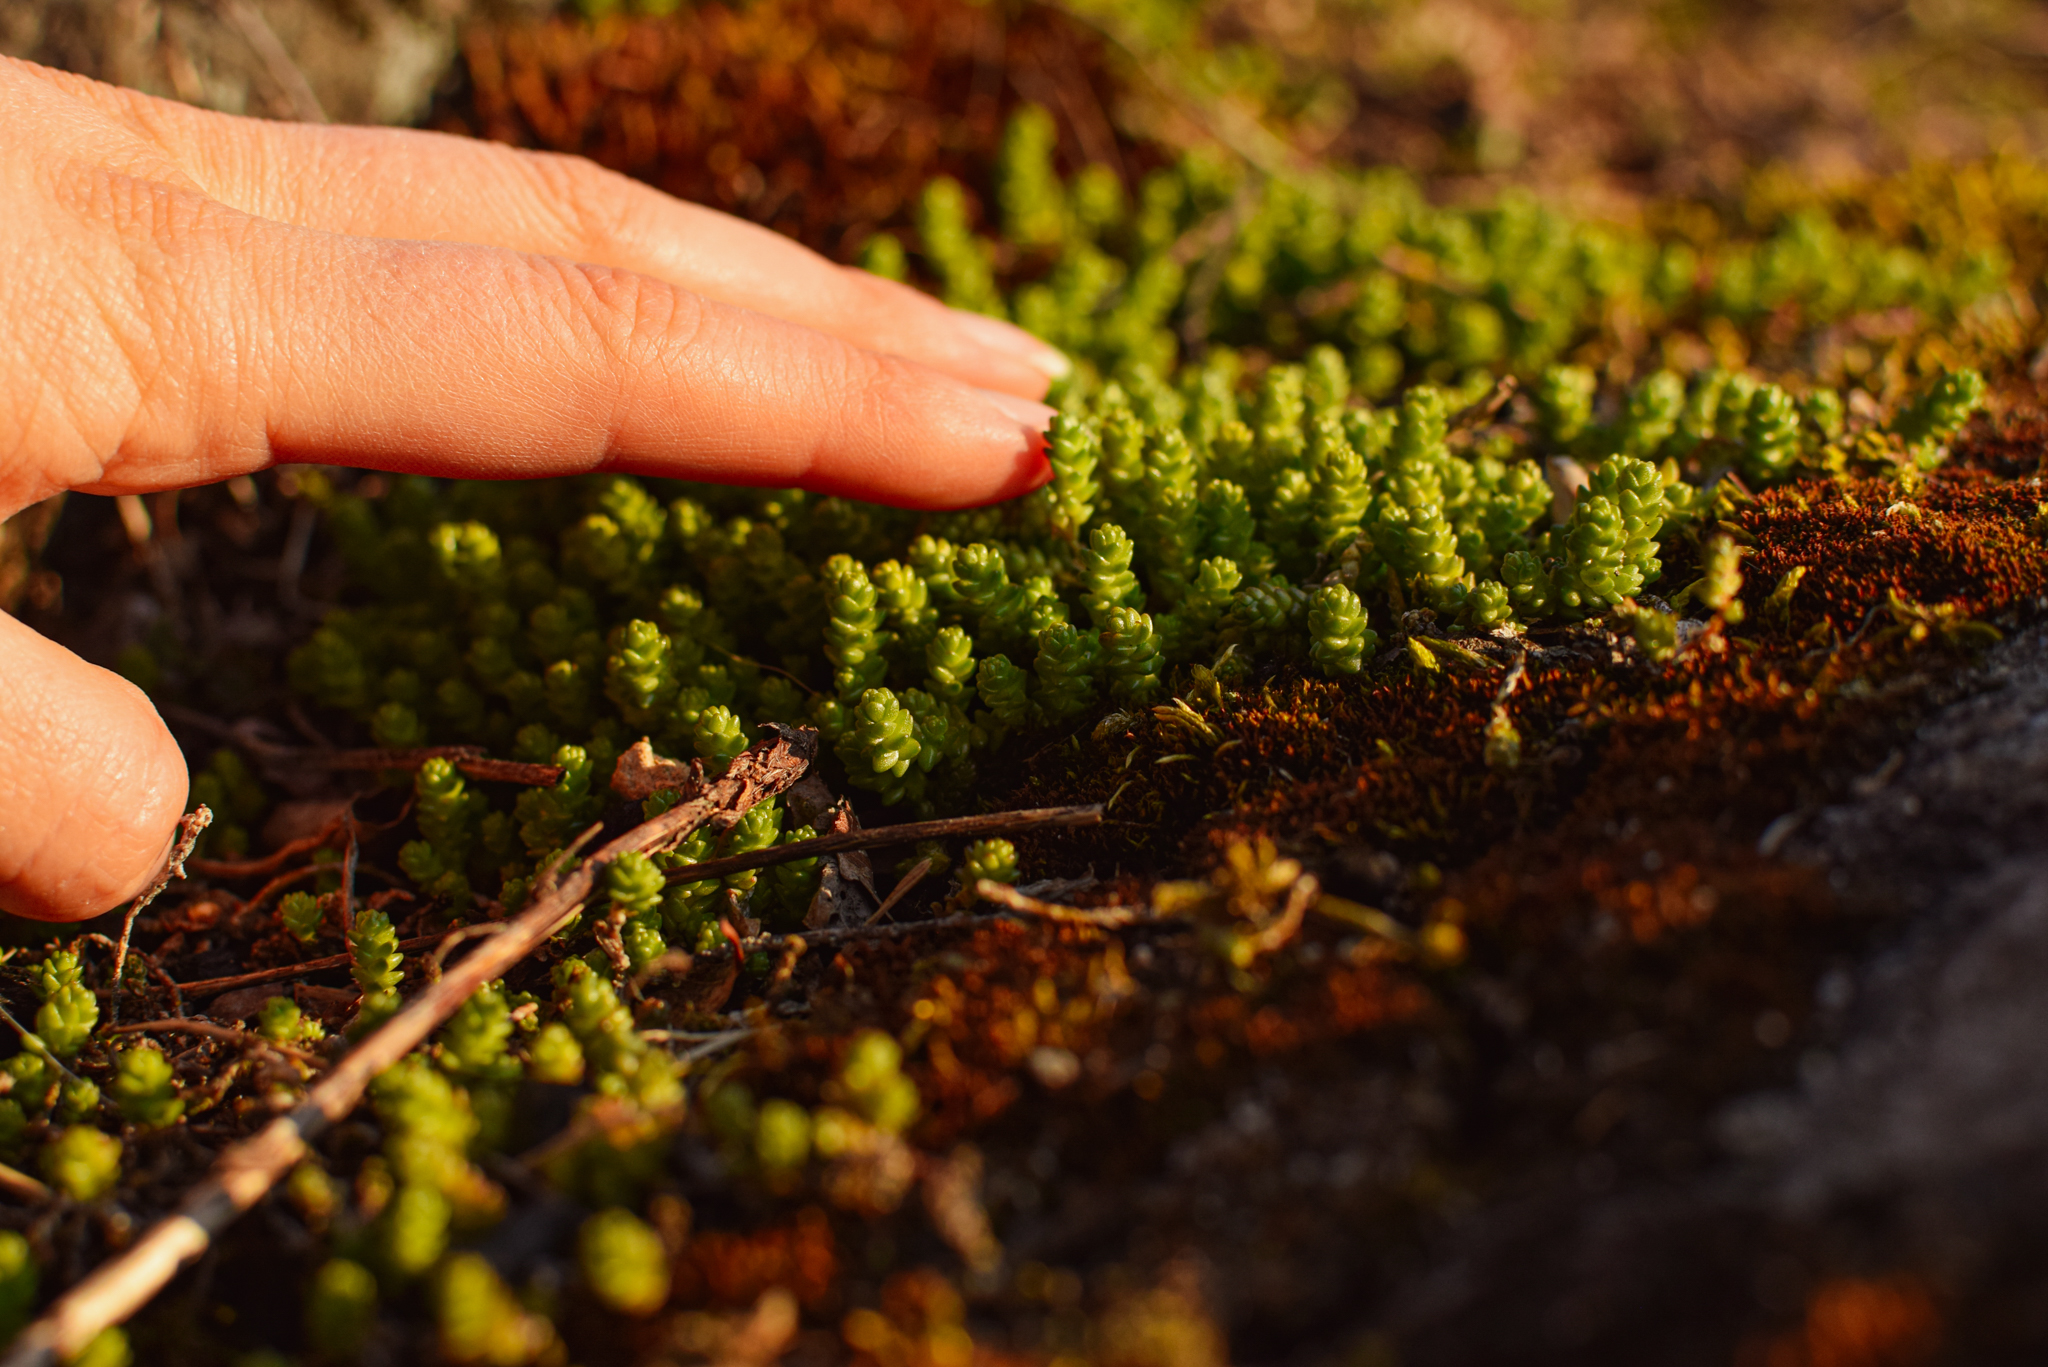 Hand touching spring nature greenness in Saimaa, Finland